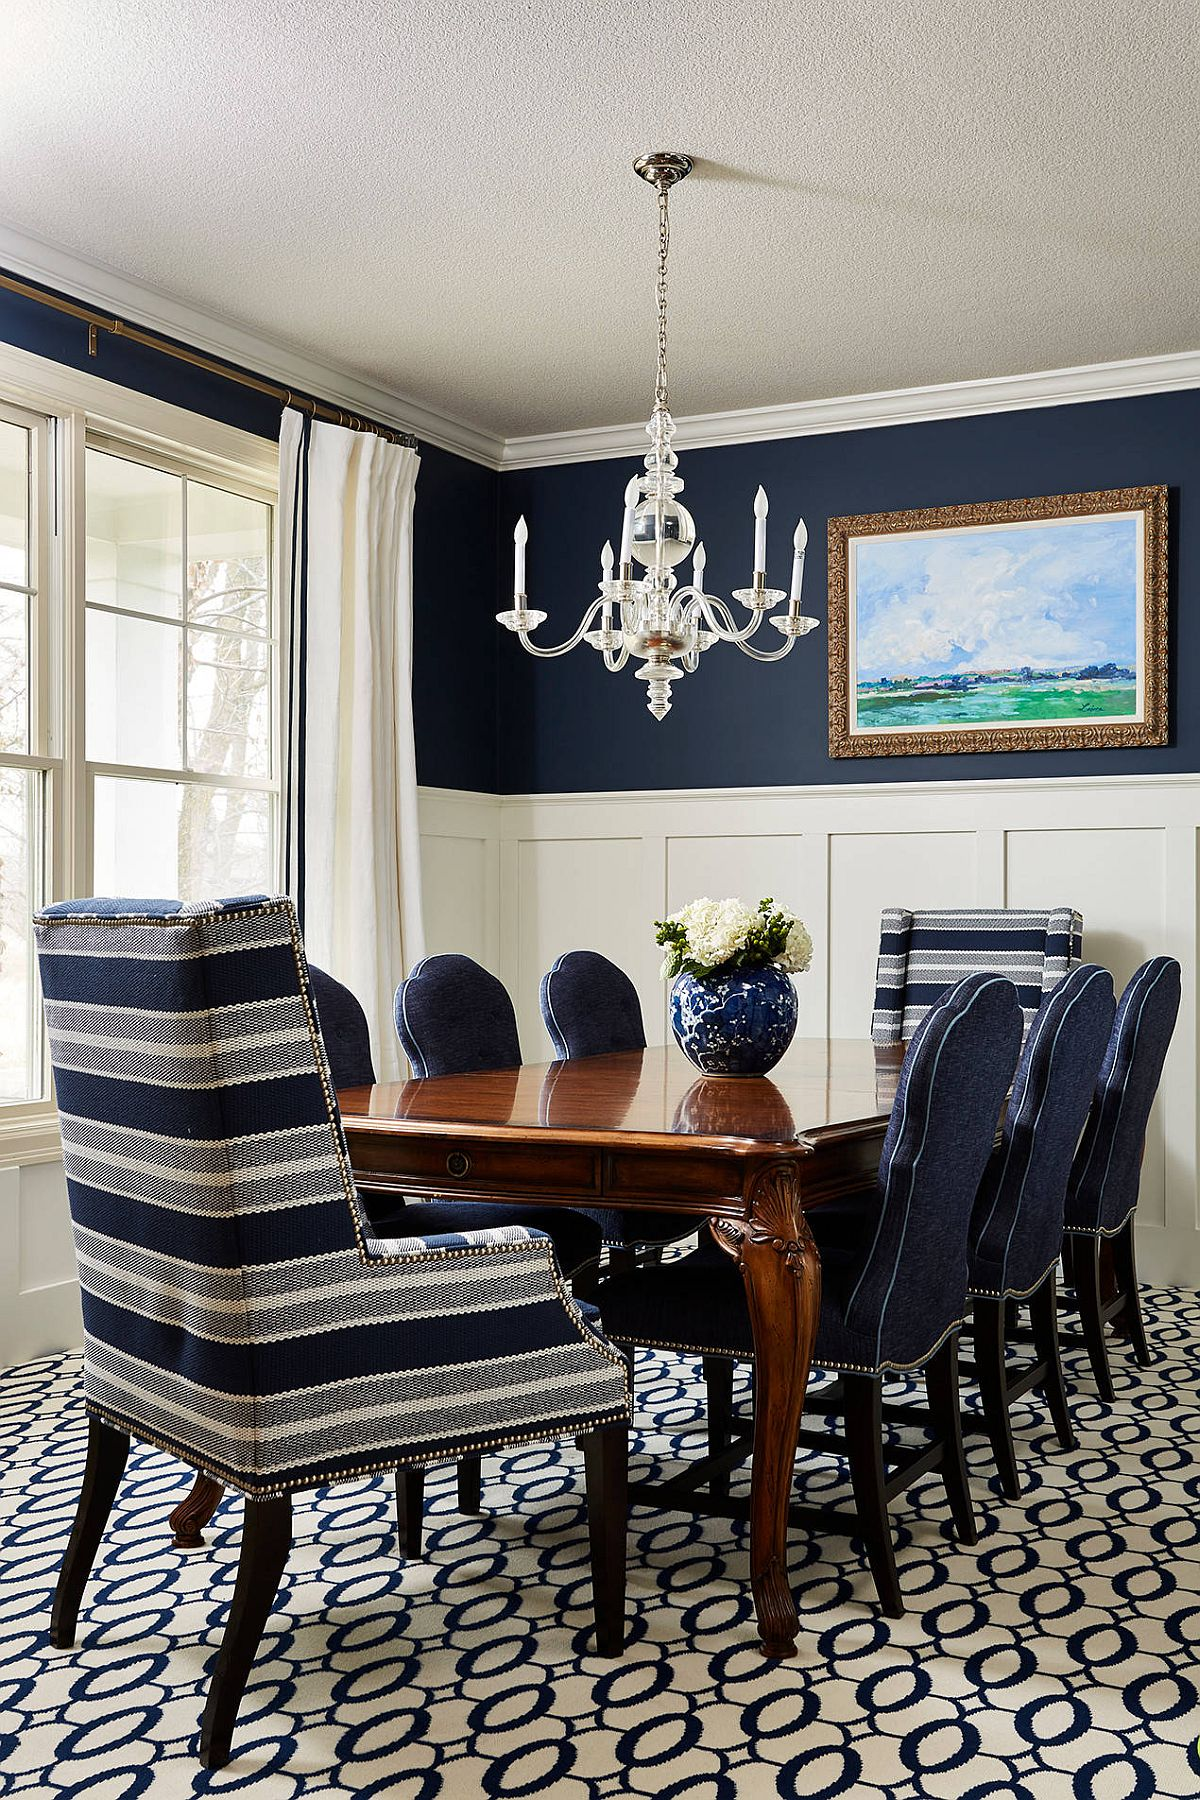 Two-striped-accent-chairs-bring-pattern-to-the-blue-and-white-dining-room-without-disturbing-its-color-scheme-85877